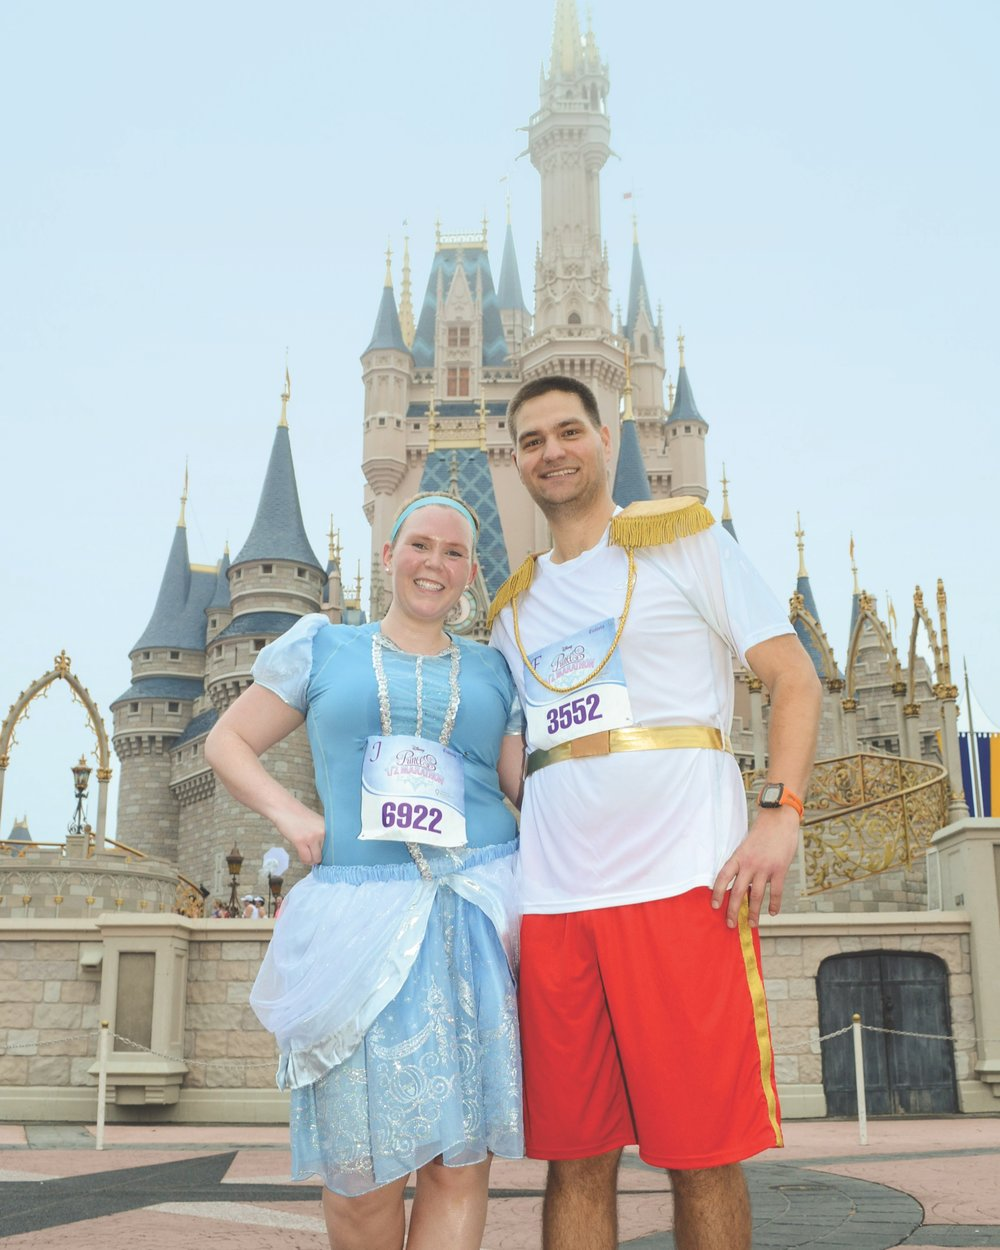 Health & fitness spending has included  Run Disney  races together!